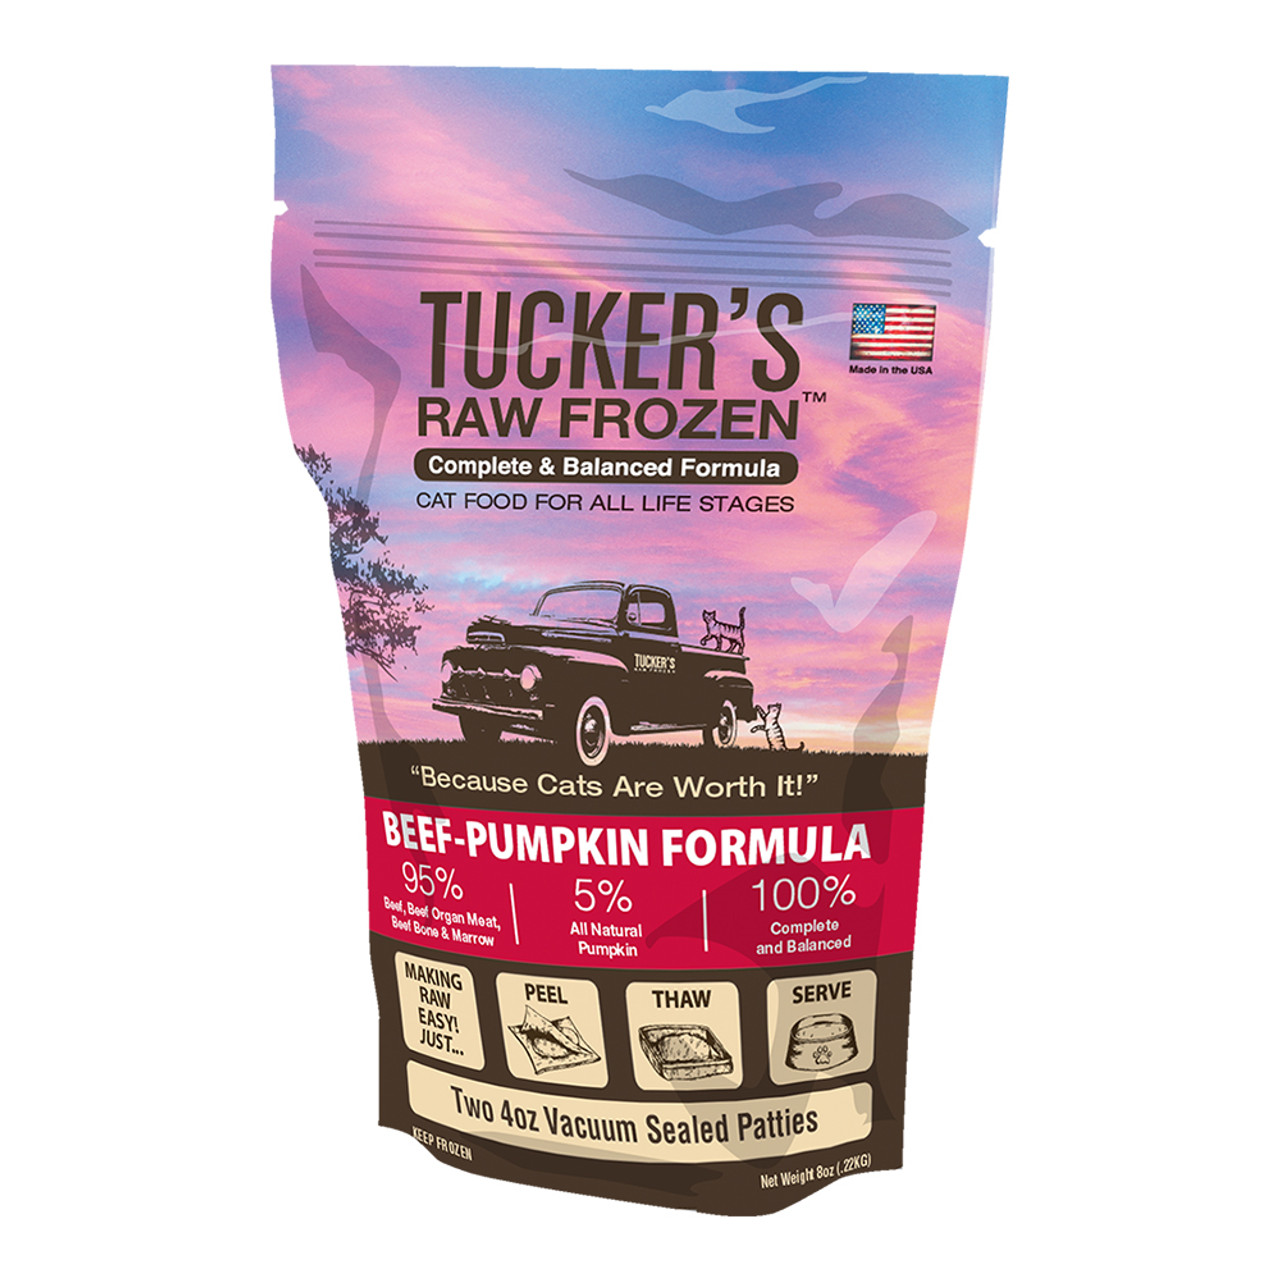 Tucker's Raw Frozen Beef-Pumpkin Diet Cat Food